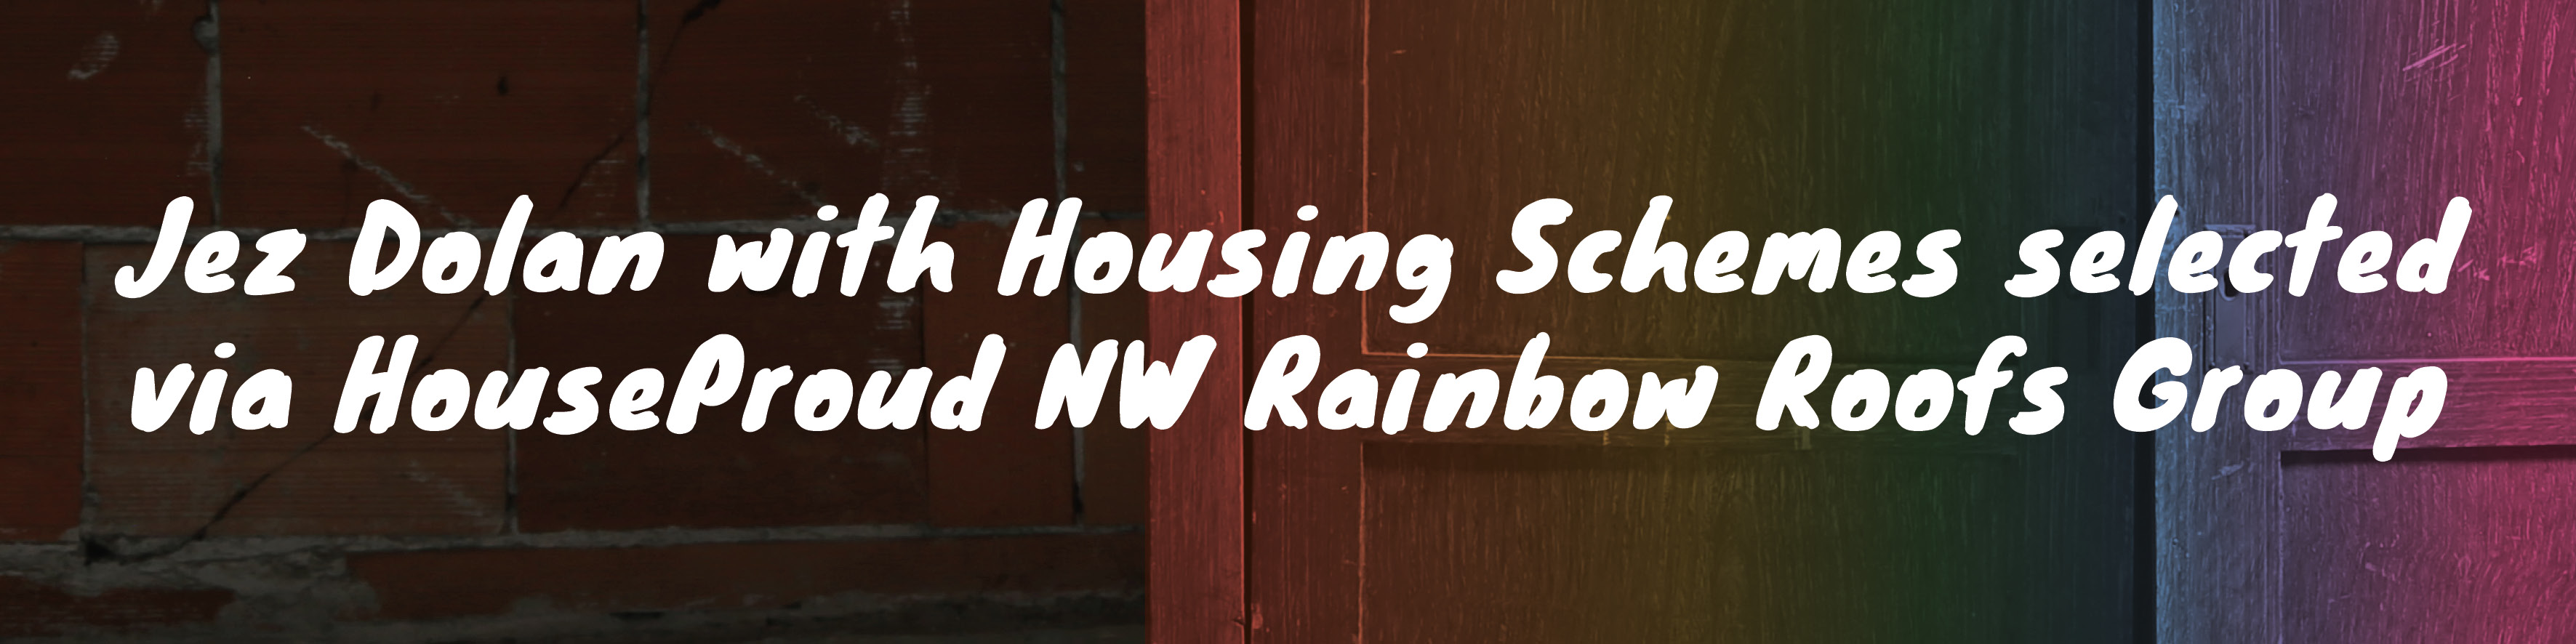 Jez Dolan with Housing Schemes selected via HouseProud NW Rainbow Roofs Group